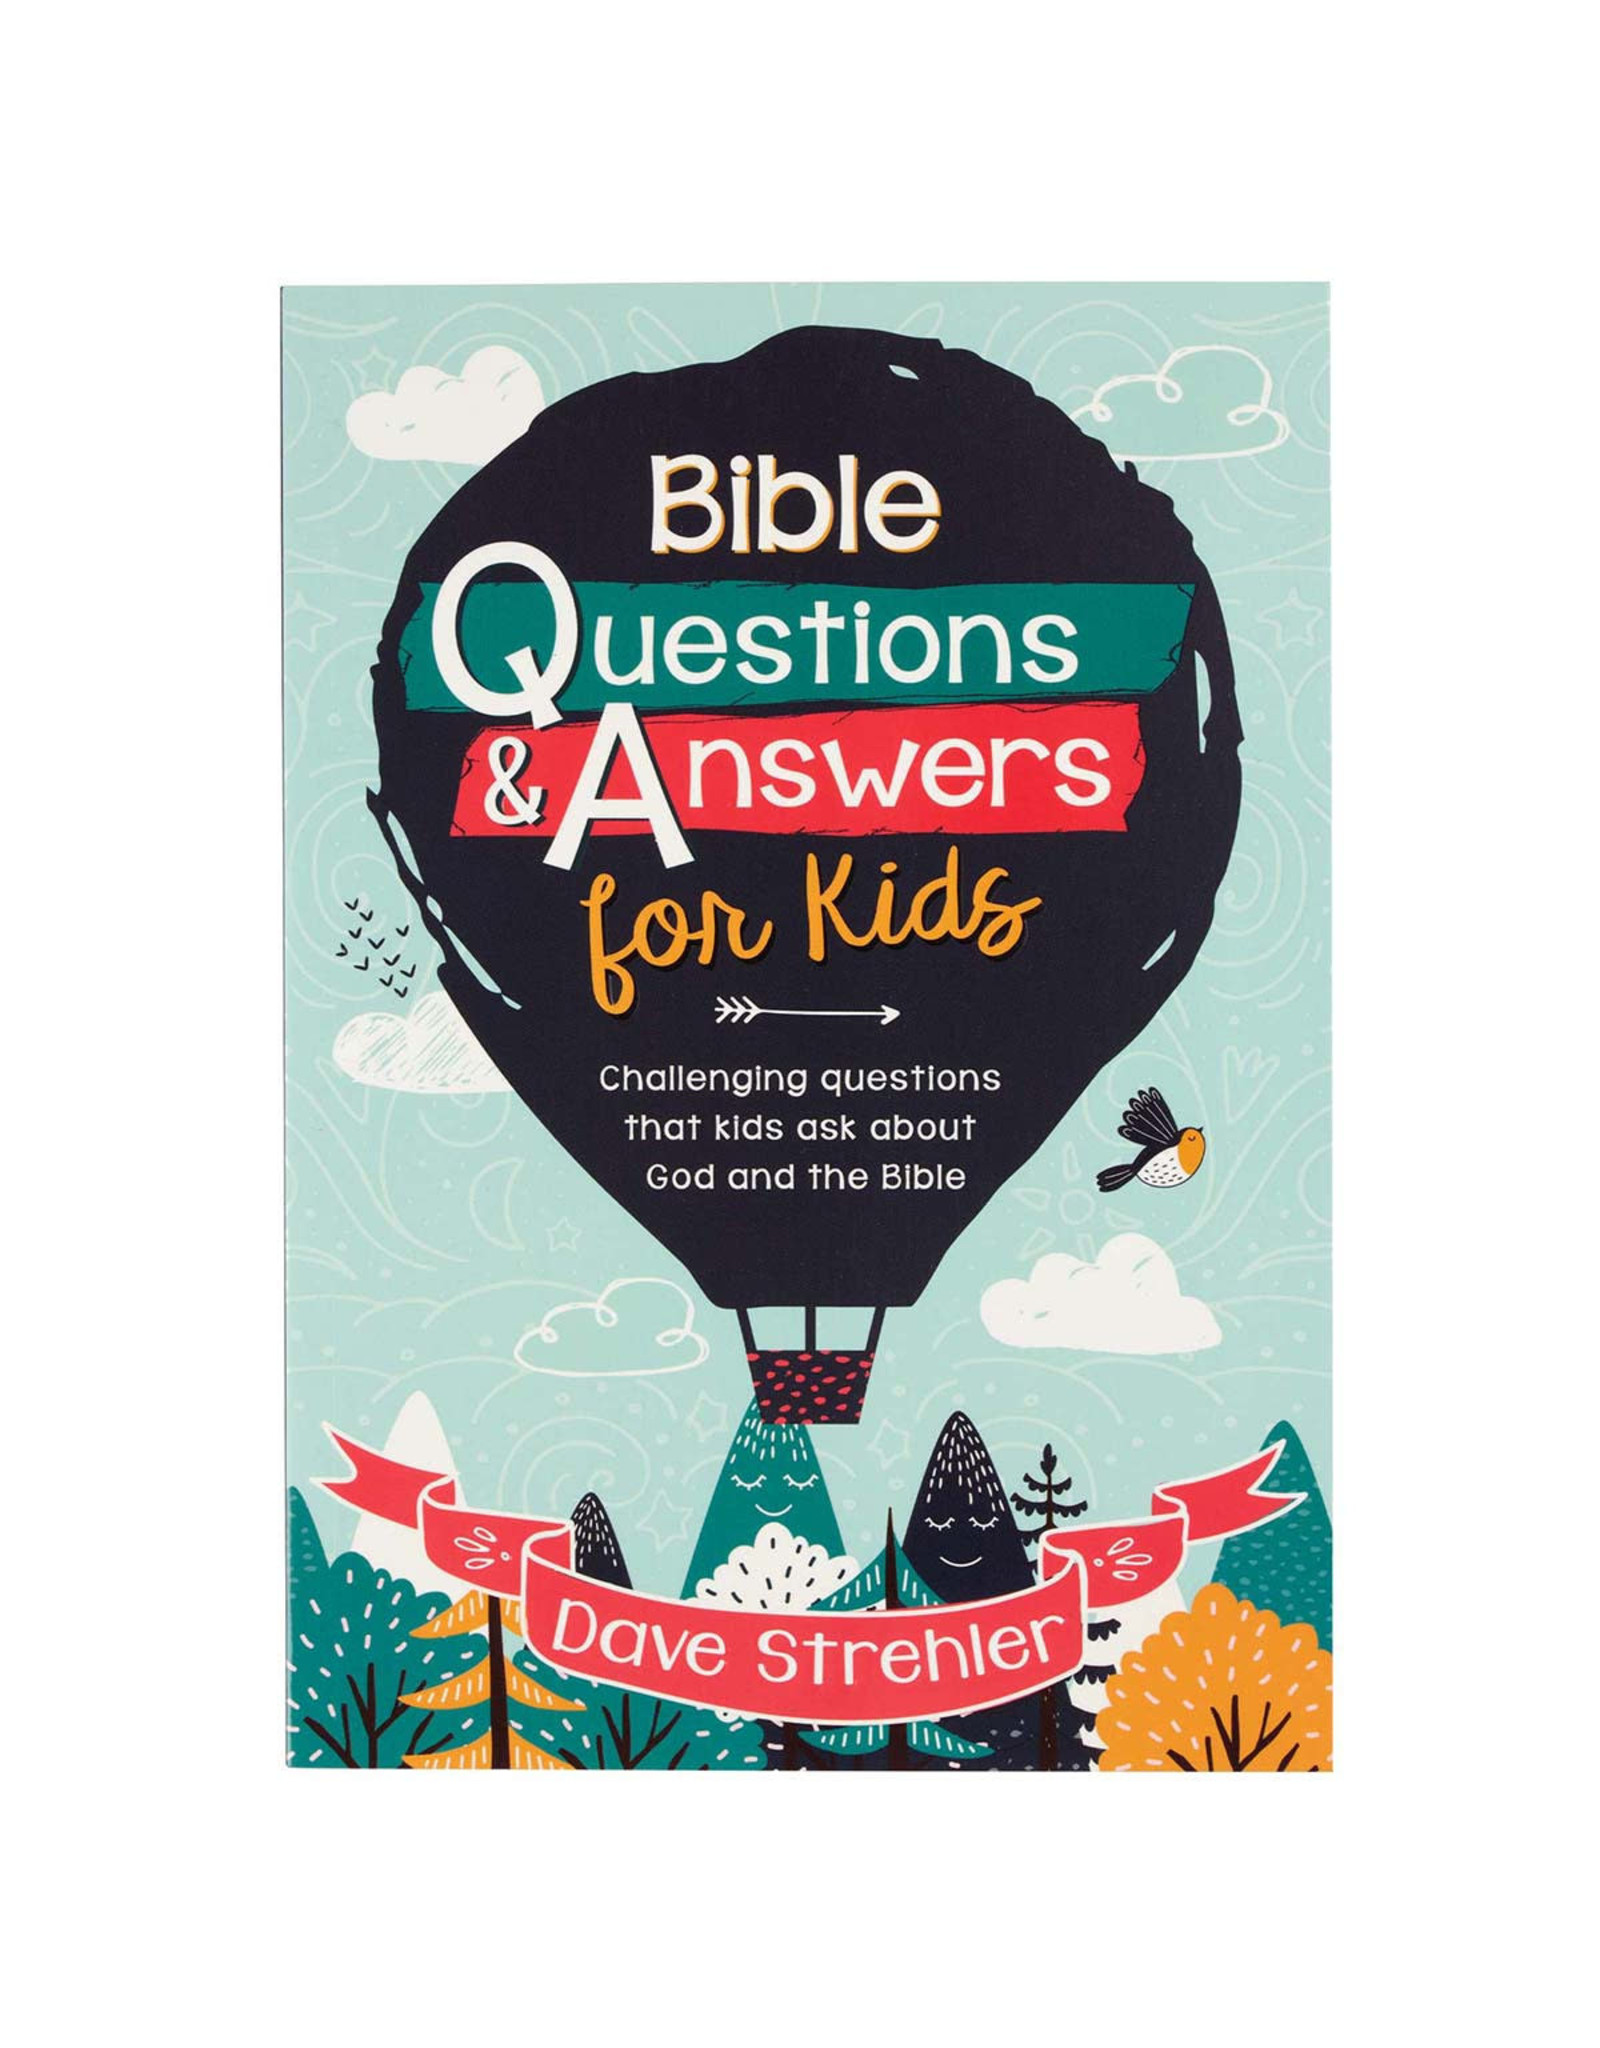 Bible Questions & Answers for Kids